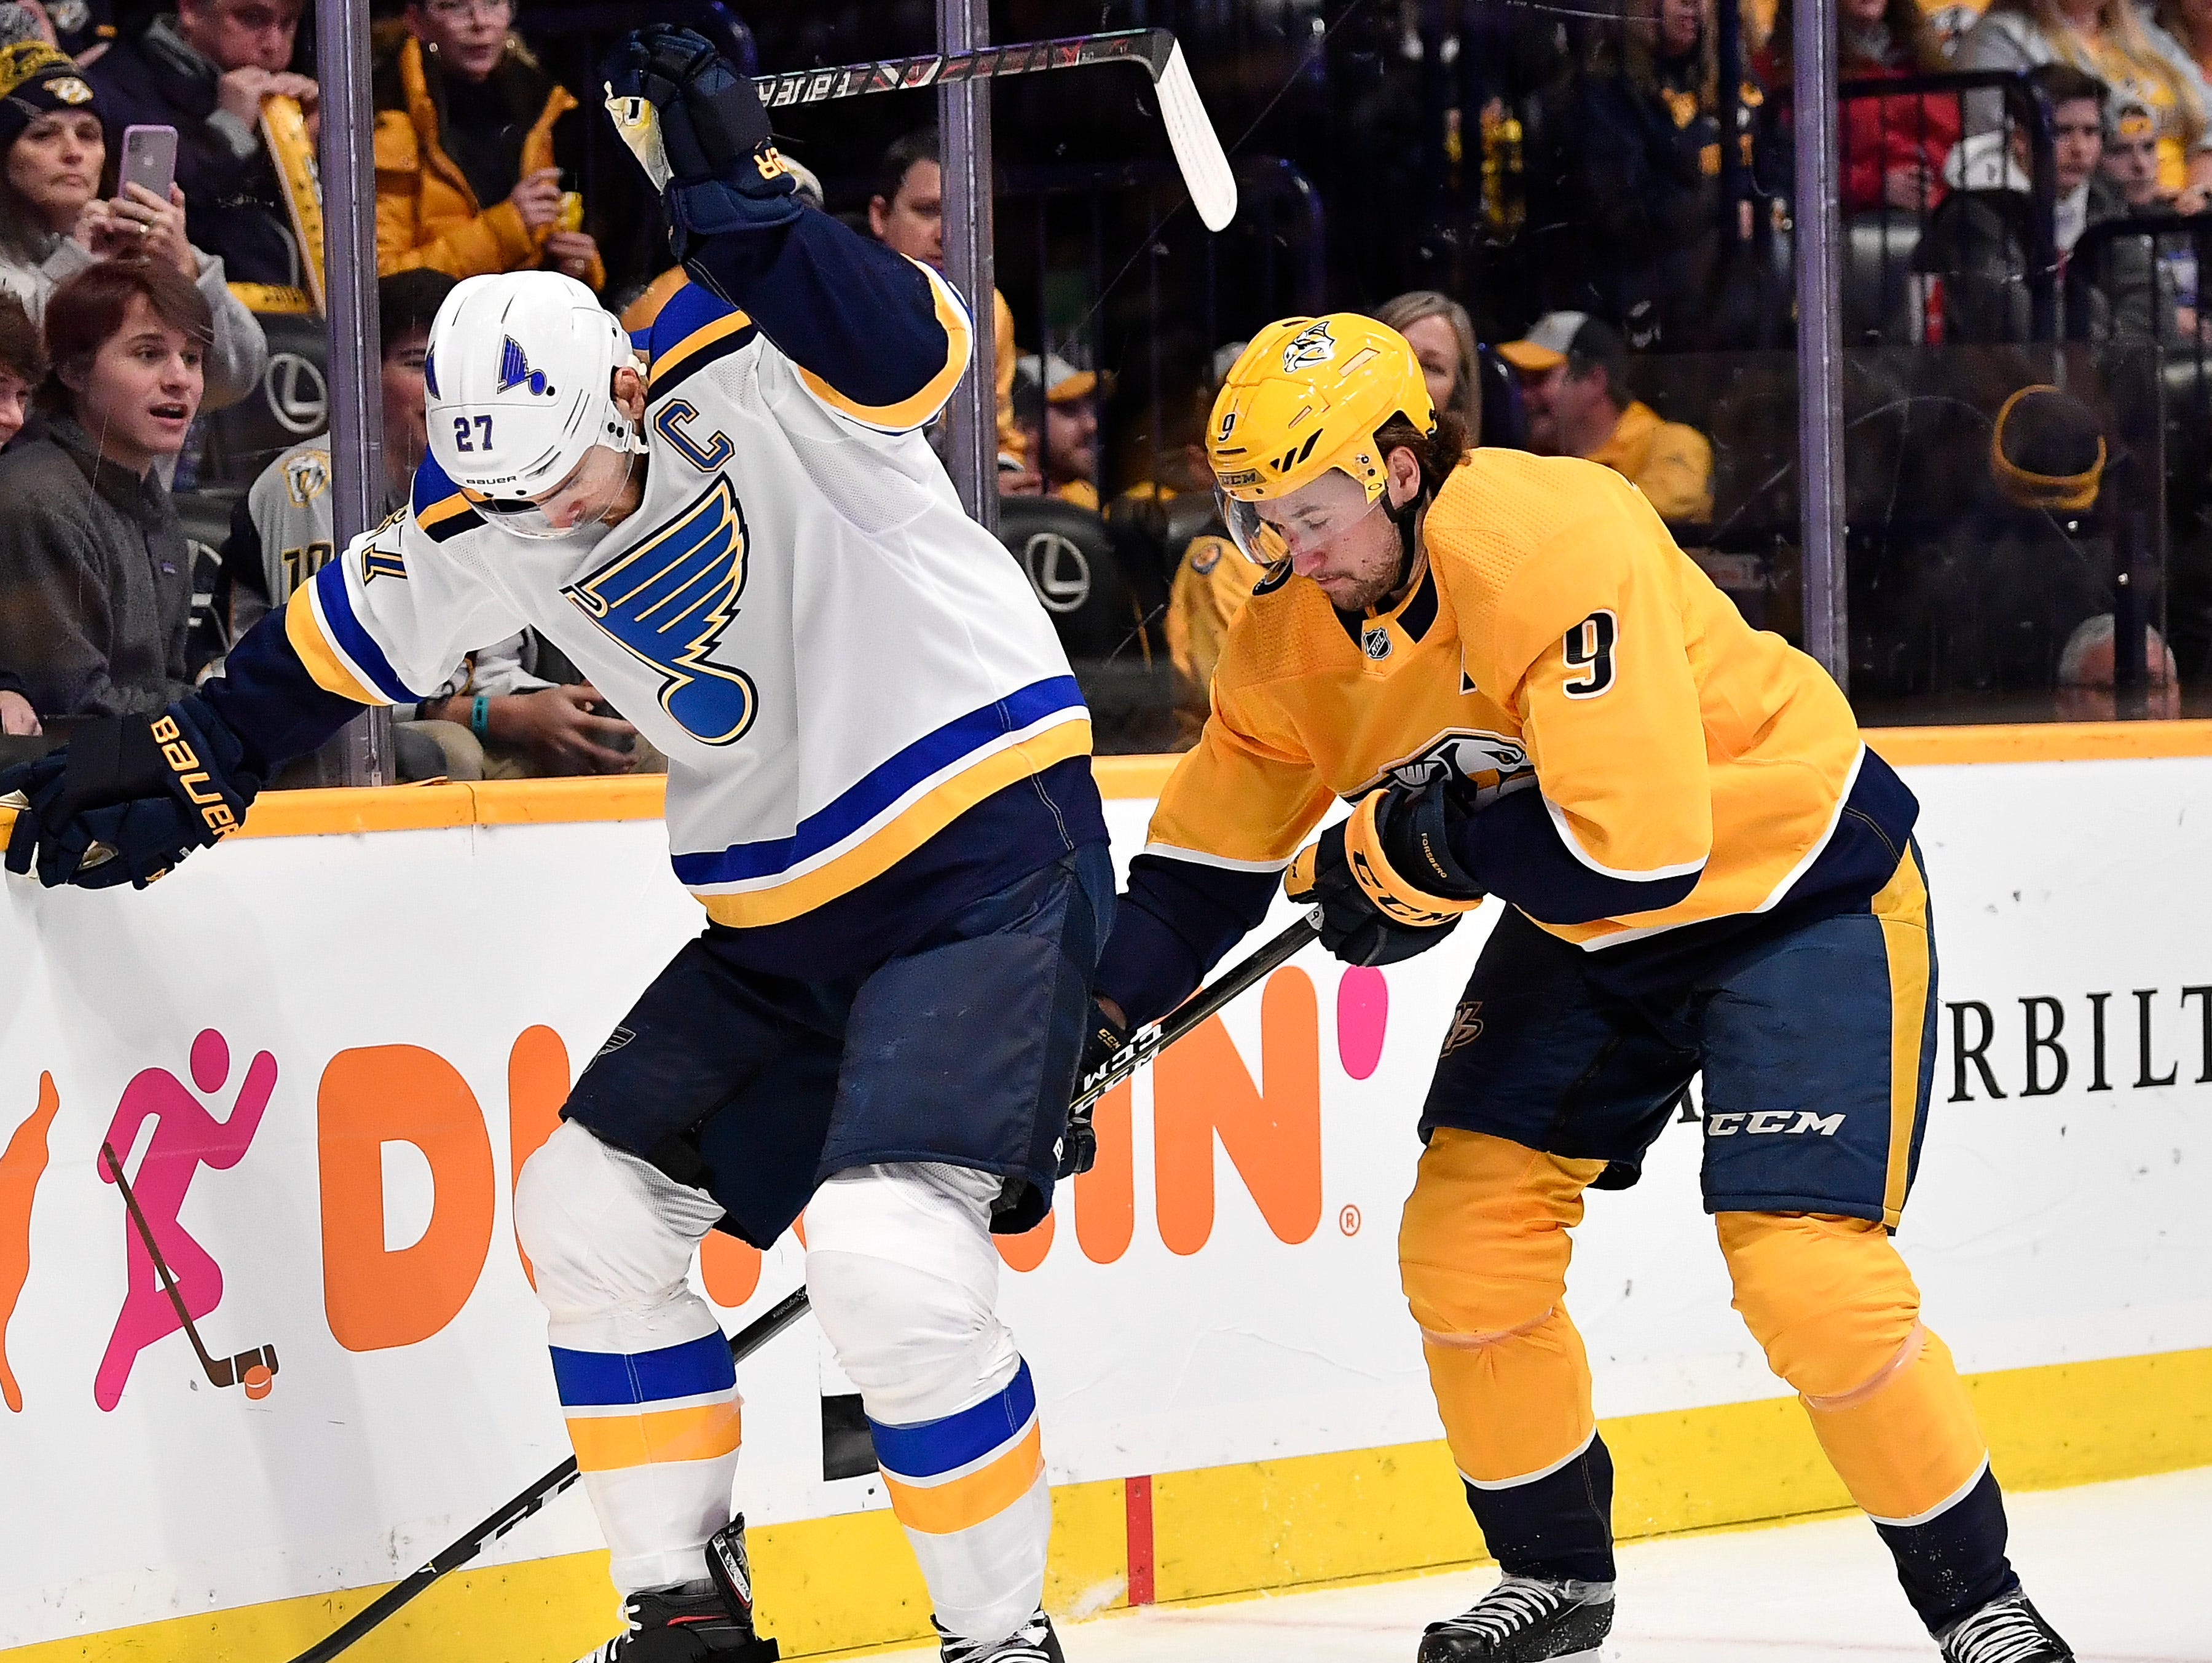 Predators left wing Filip Forsberg (9) tries to get the puck from Blues defenseman Alex Pietrangelo (27) during the first period at Bridgestone Arena Sunday Feb. 10, 2019 in Nashville, Tenn.